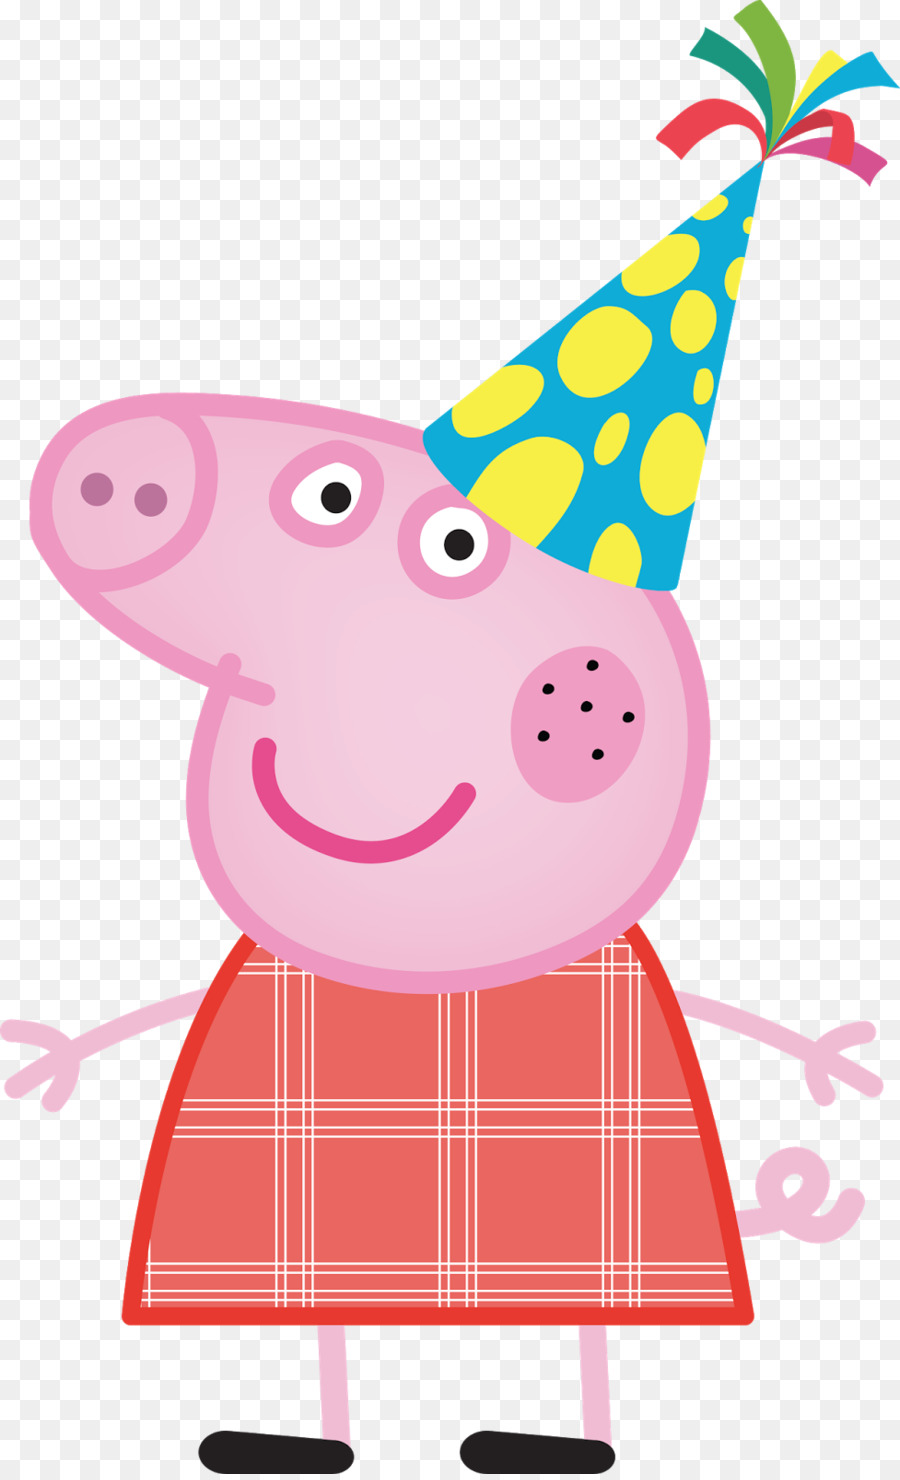 daddy pig mummy pig george pig clip art peppa pig png download rh kisspng com clipart pigs at the trough clipart pig wig